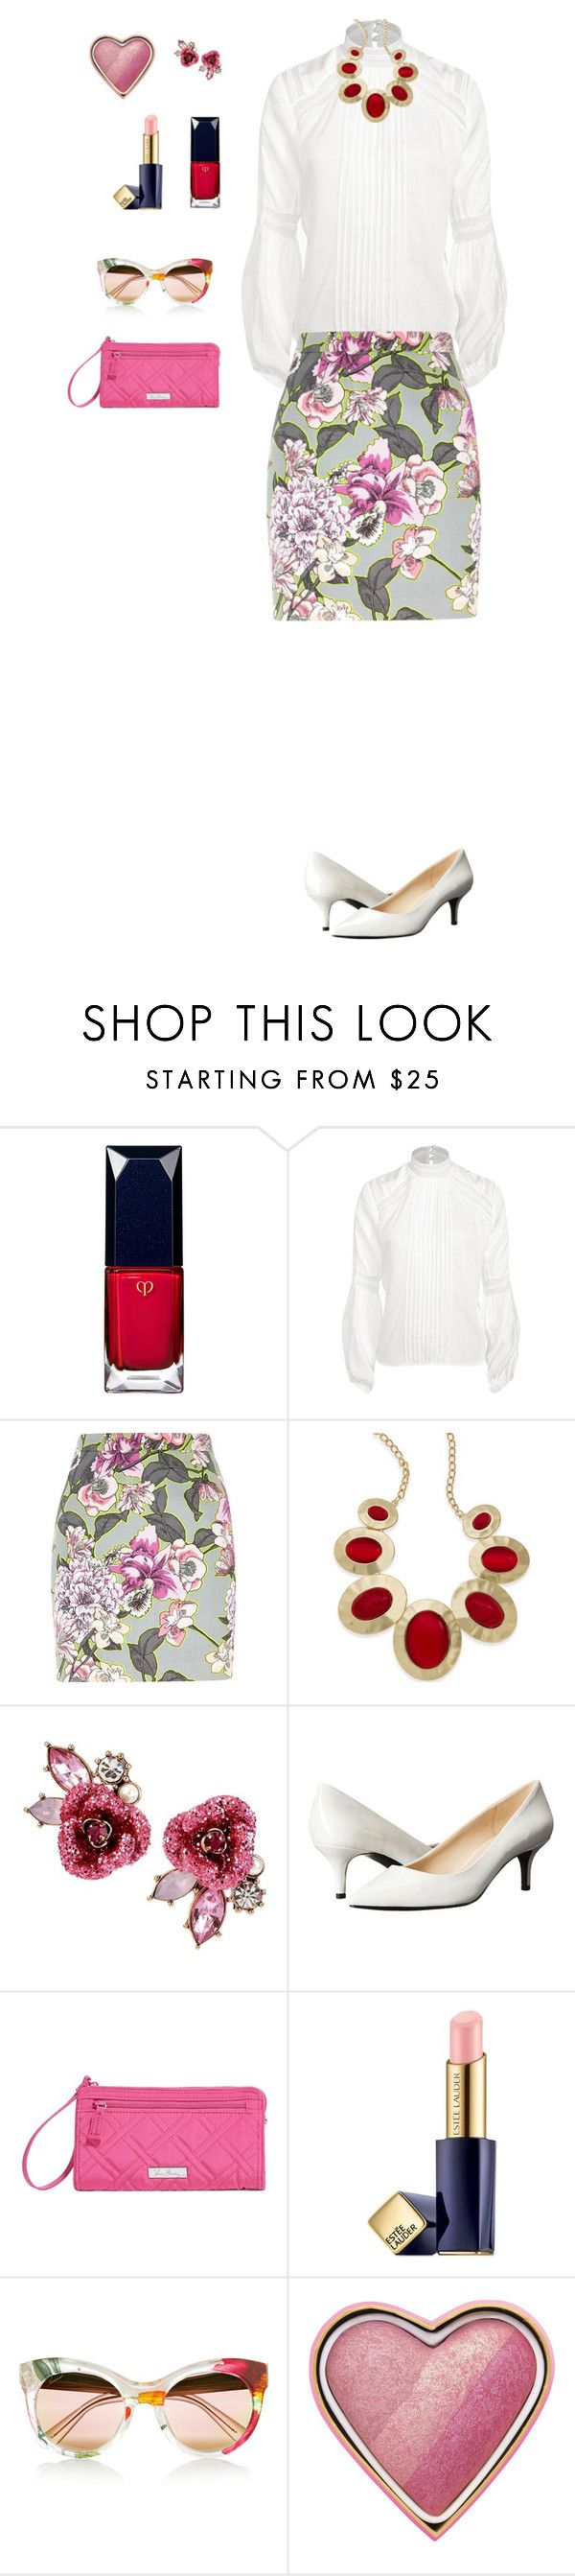 """""""Untitled #121"""" by elleceee ❤ liked on Polyvore featuring Clé de Peau Beauté, River Island, Style & Co., Betsey Johnson, Nine West, Vera Bradley, Estée Lauder, Gucci, Too Faced Cosmetics and women's clothing"""